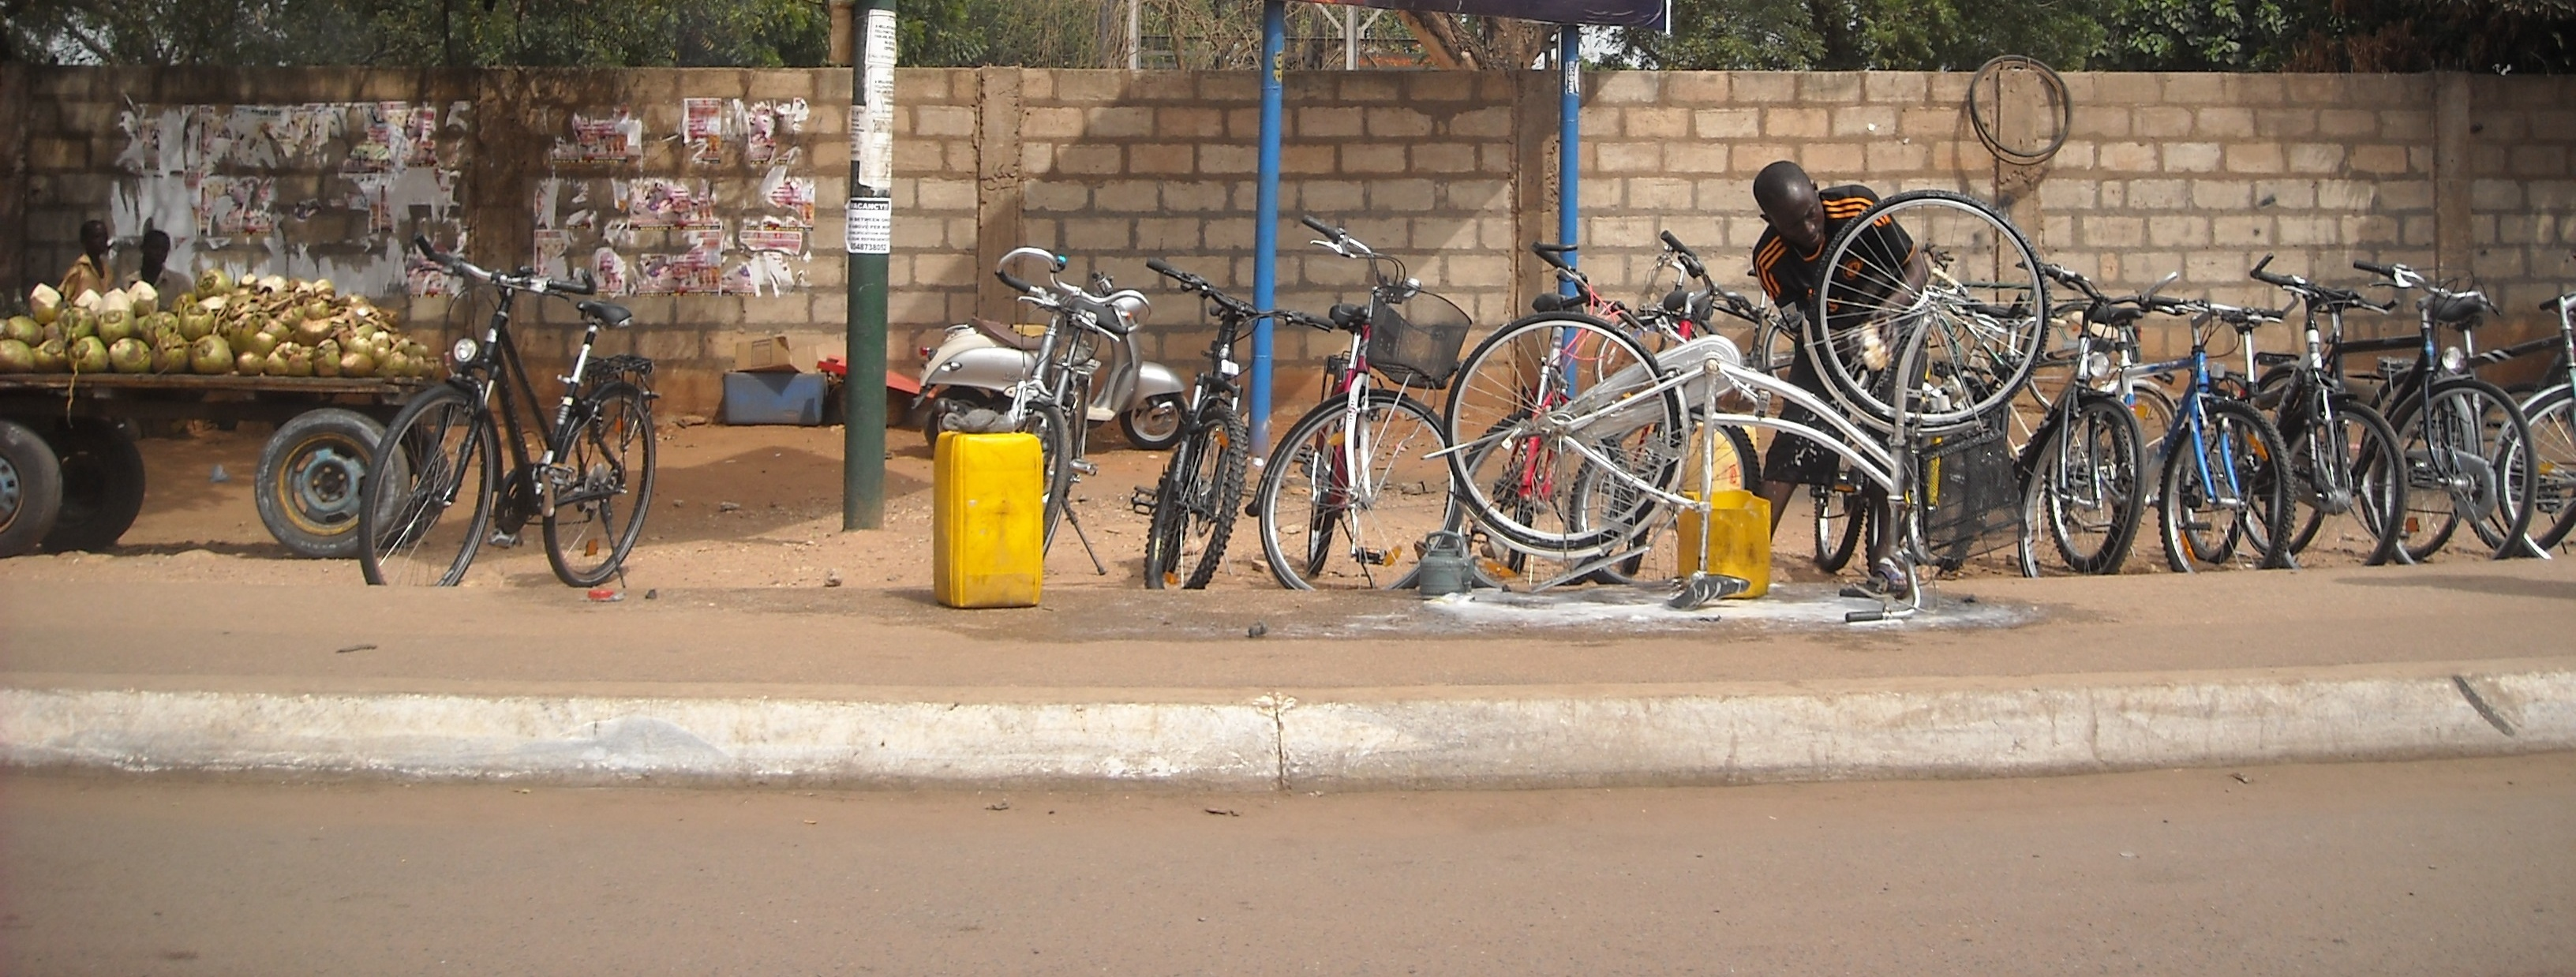 Bicycle seller and repairman, Mamobi, Accra, Ghana.